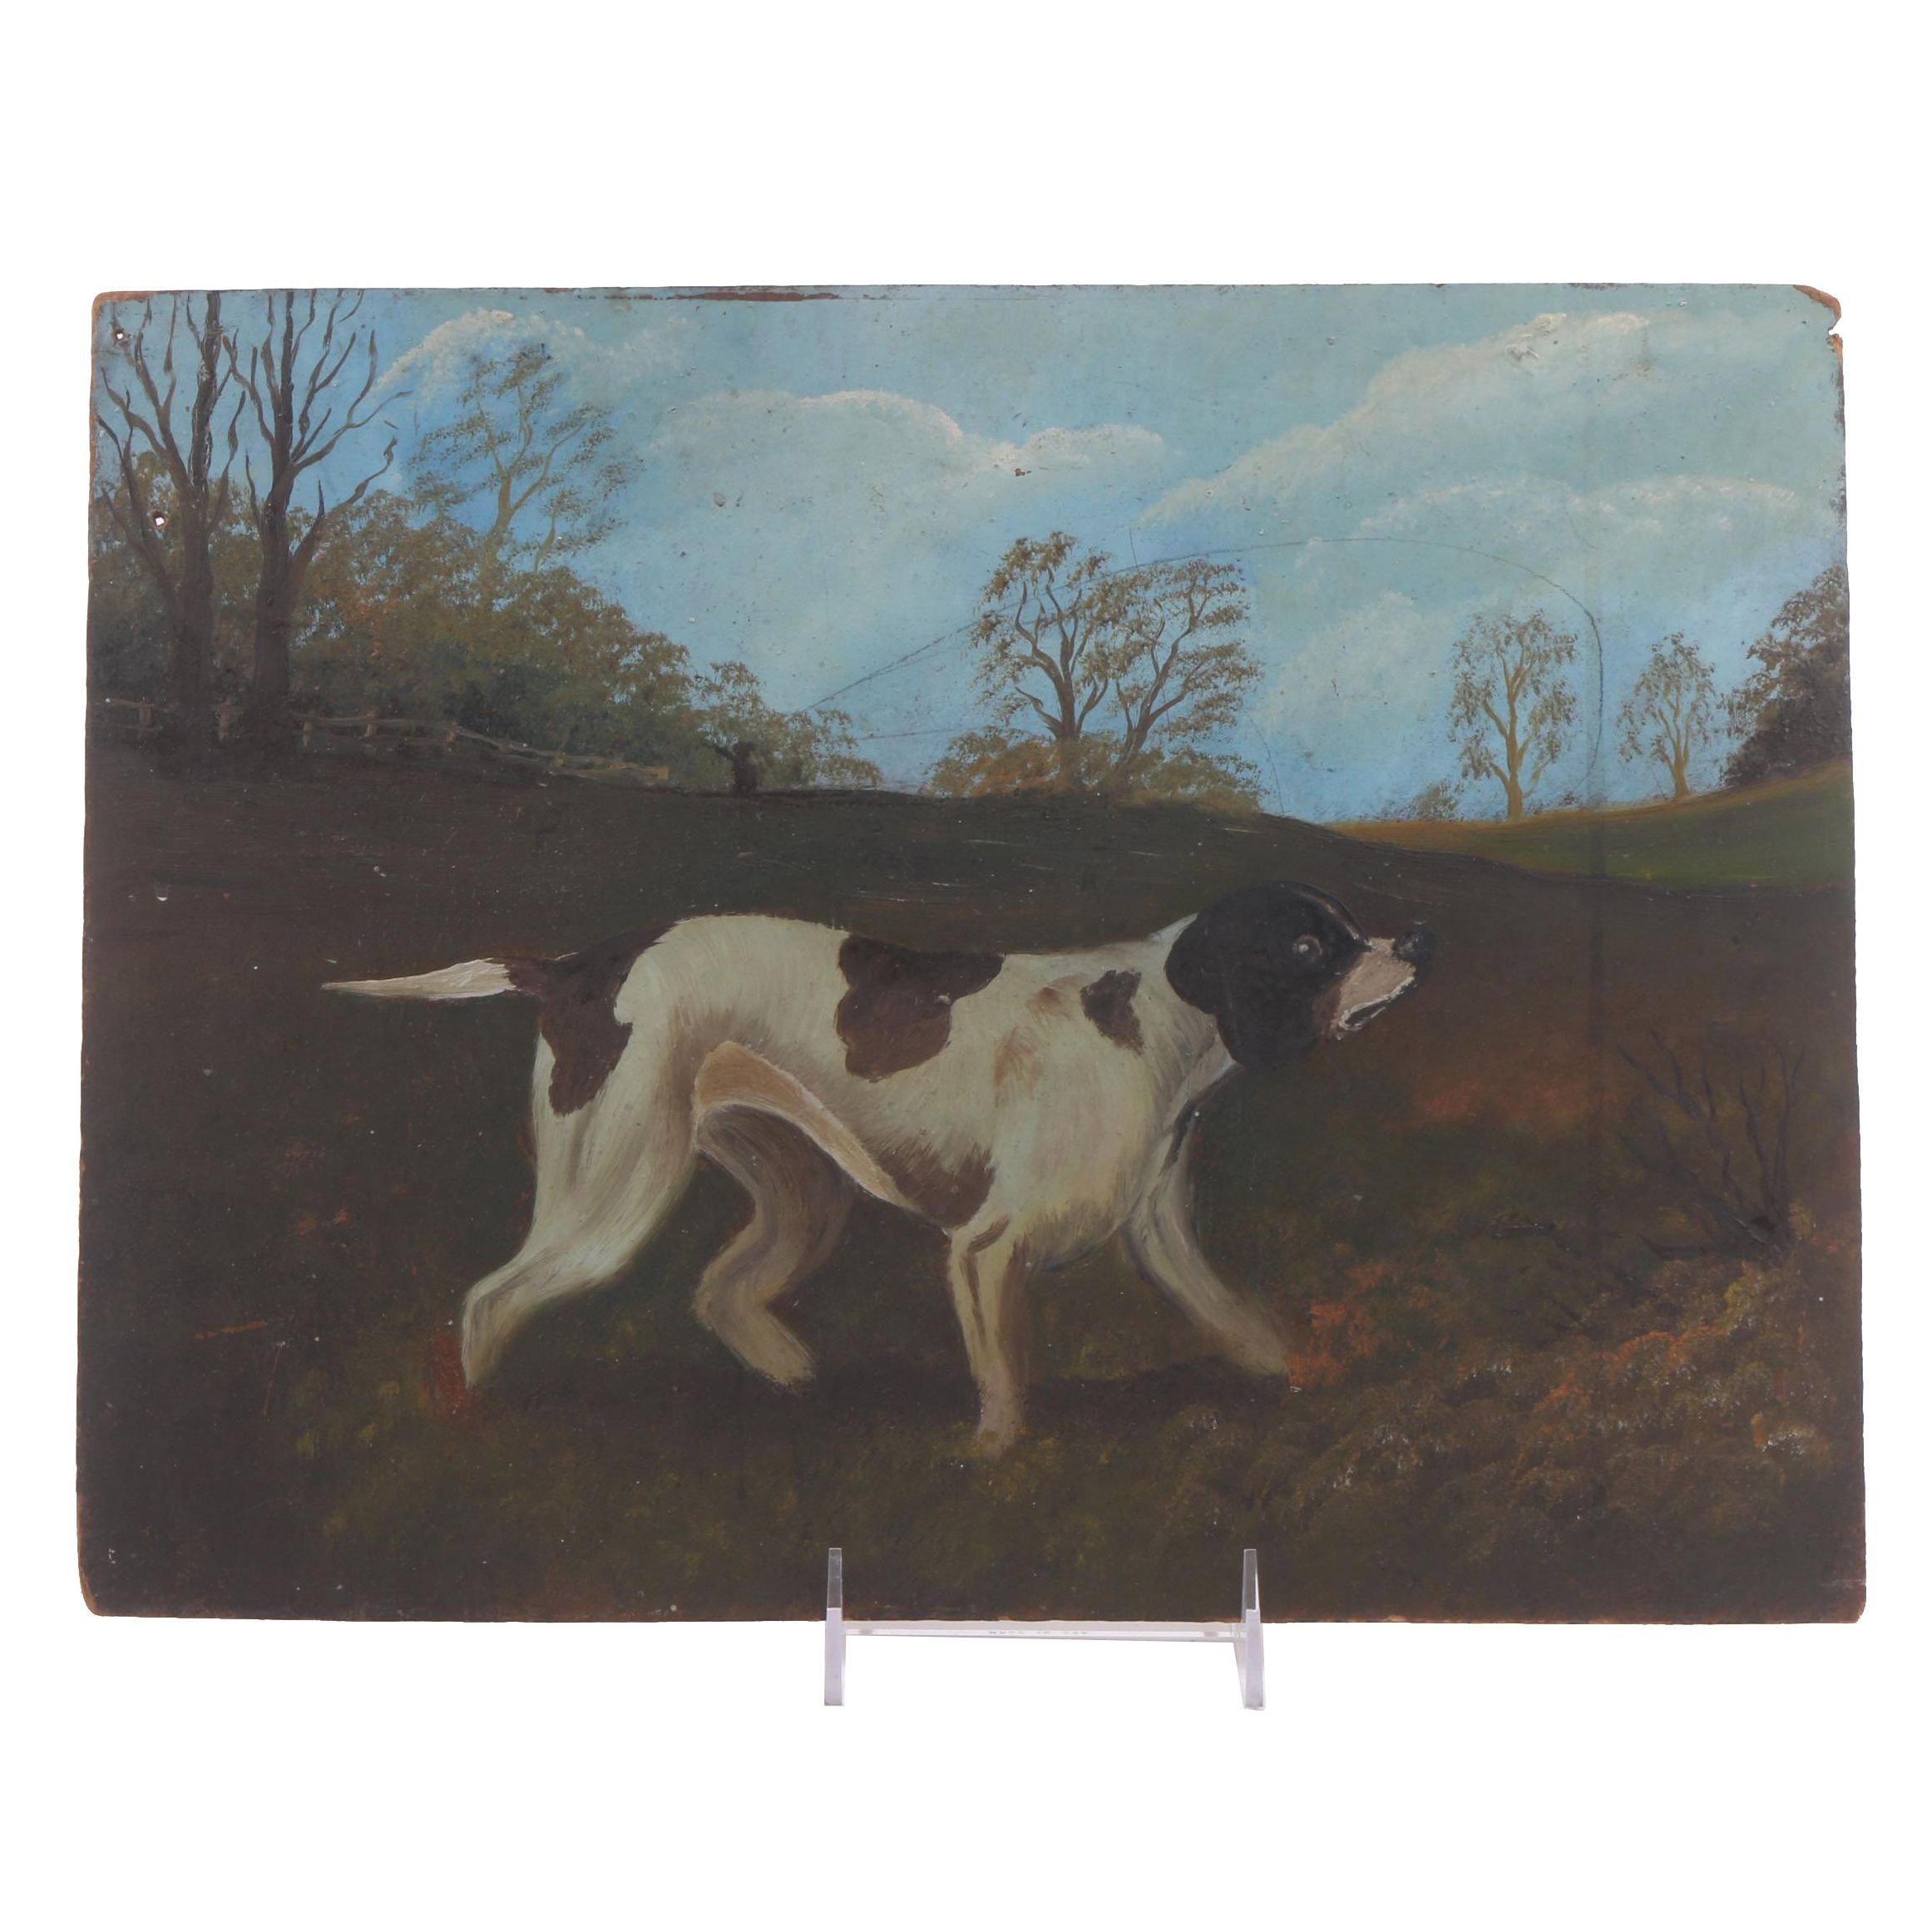 Antique Naïve Oil Painting of a Hunting Dog